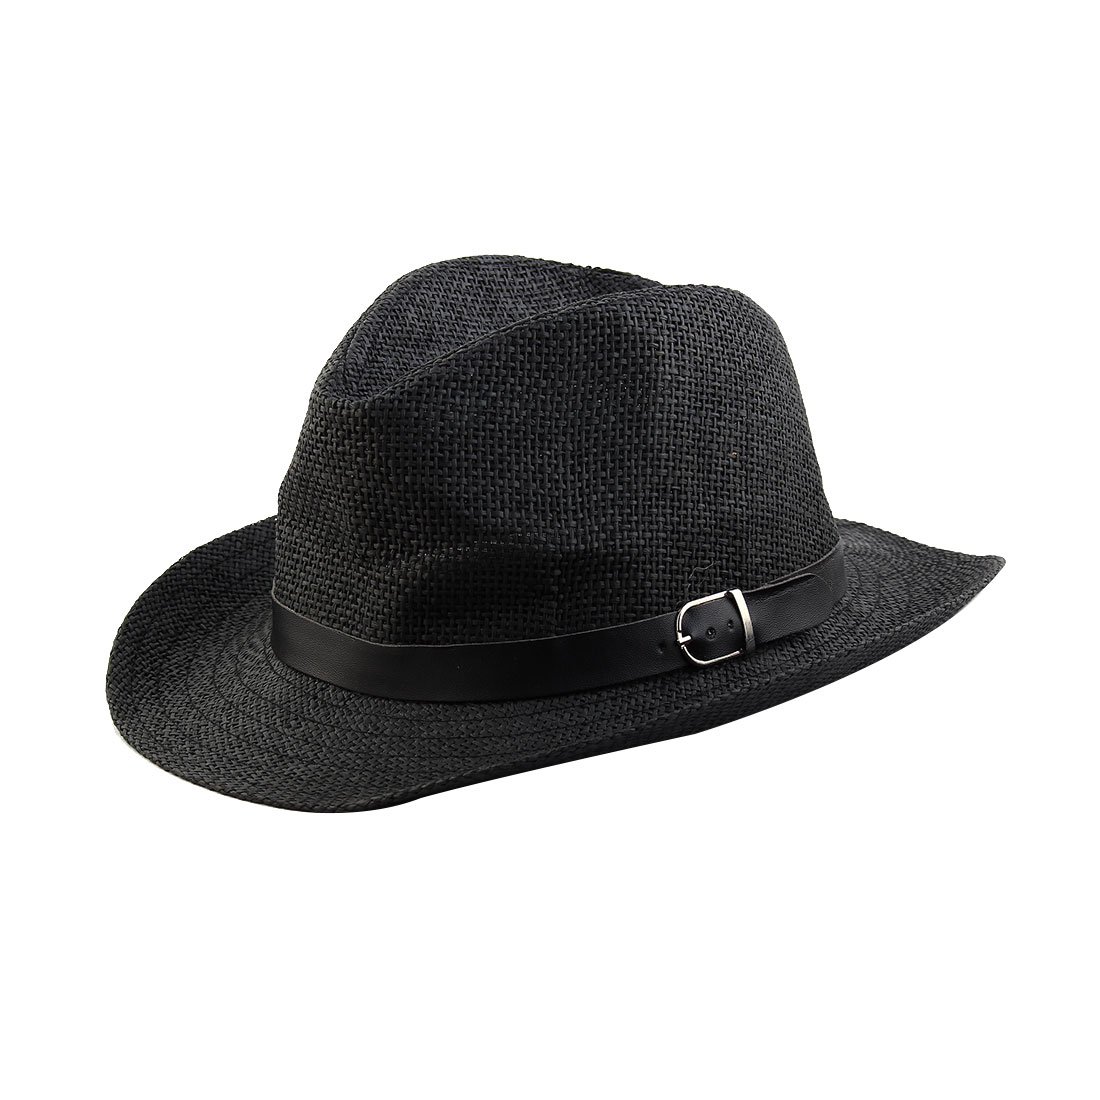 Summer Straw Braided Faux Leather Band Western Style Sunhat Cowboy Hat Black